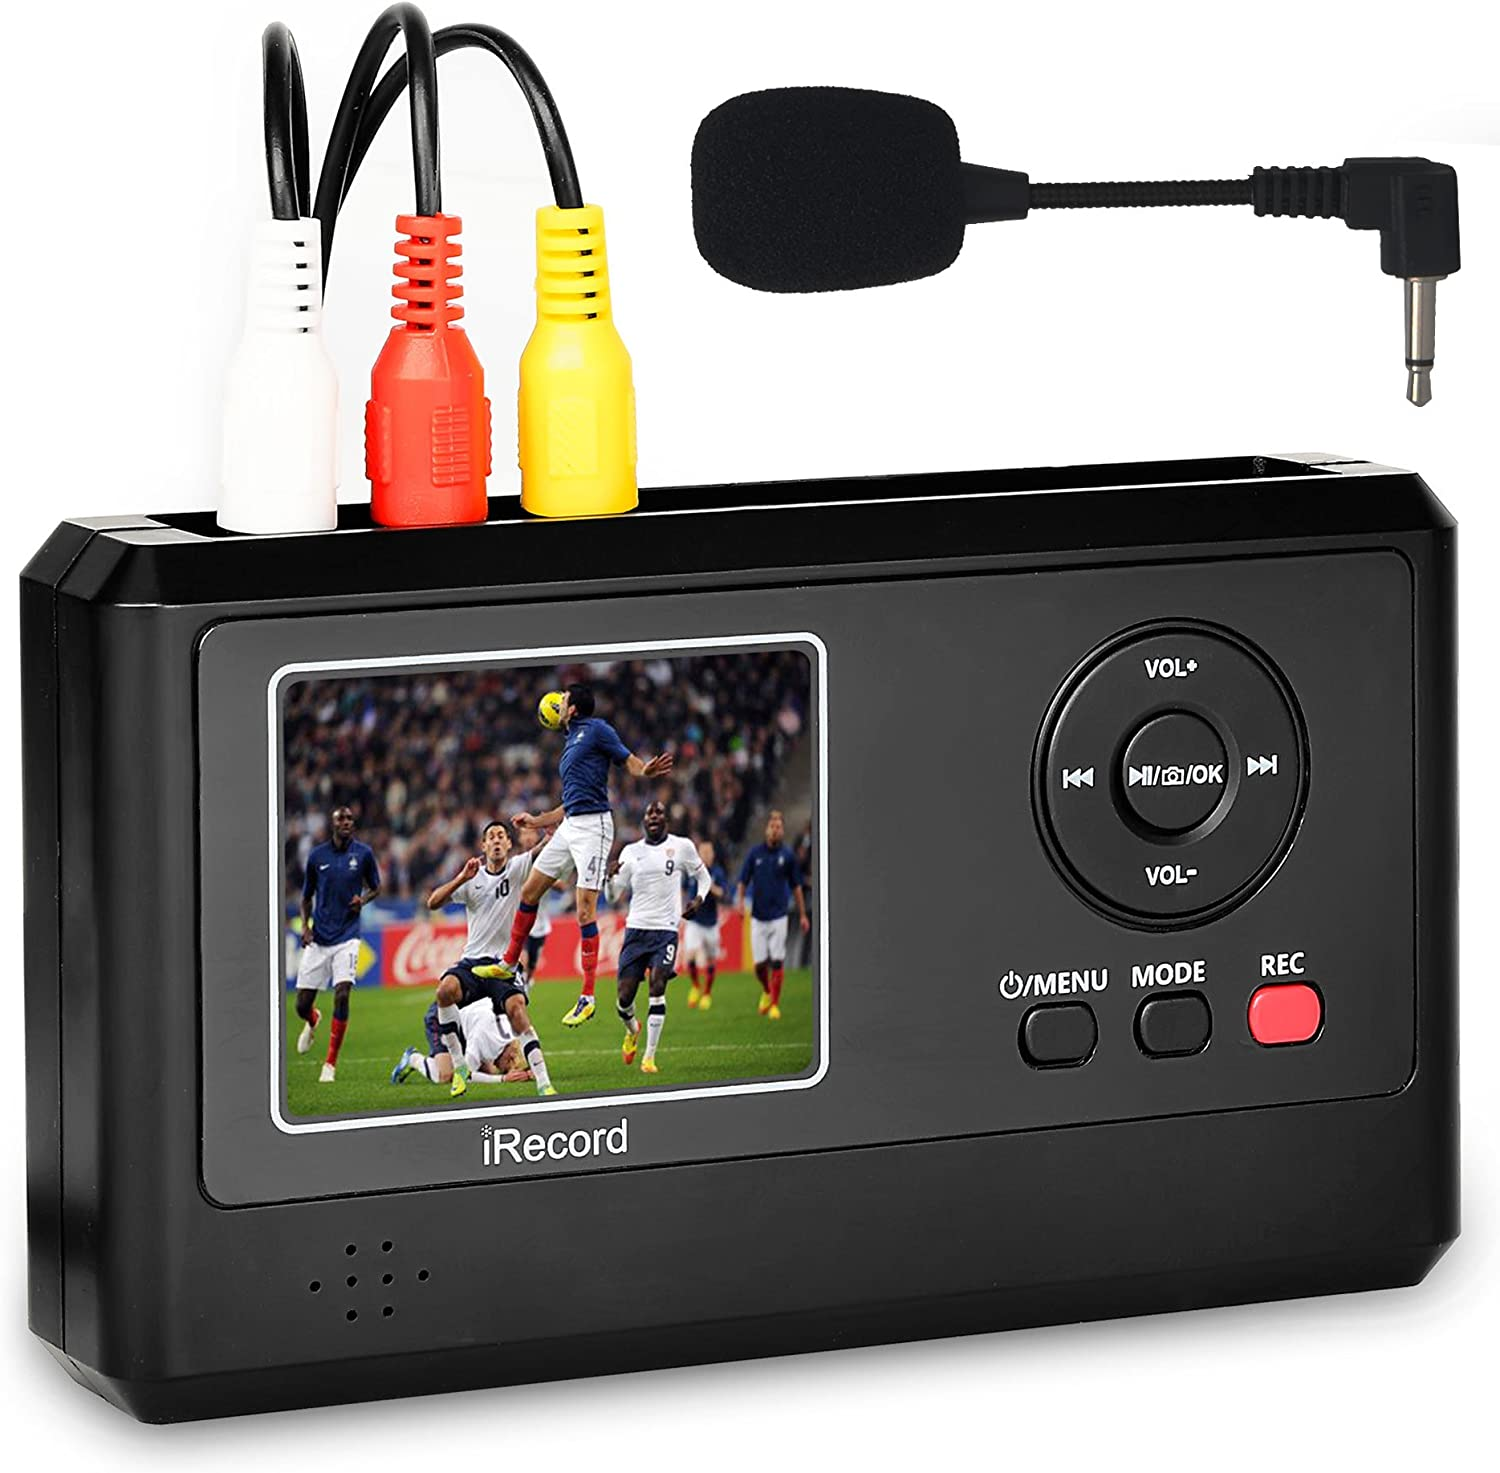 Amazon Com Digitnow Video Capture Box With Microphone Vhs To Digital Dvd Converter From Vcr Tapes Hi8 Camcorder Tv Box And Gaming Systems Save To Tf Card Directly Home Audio Theater